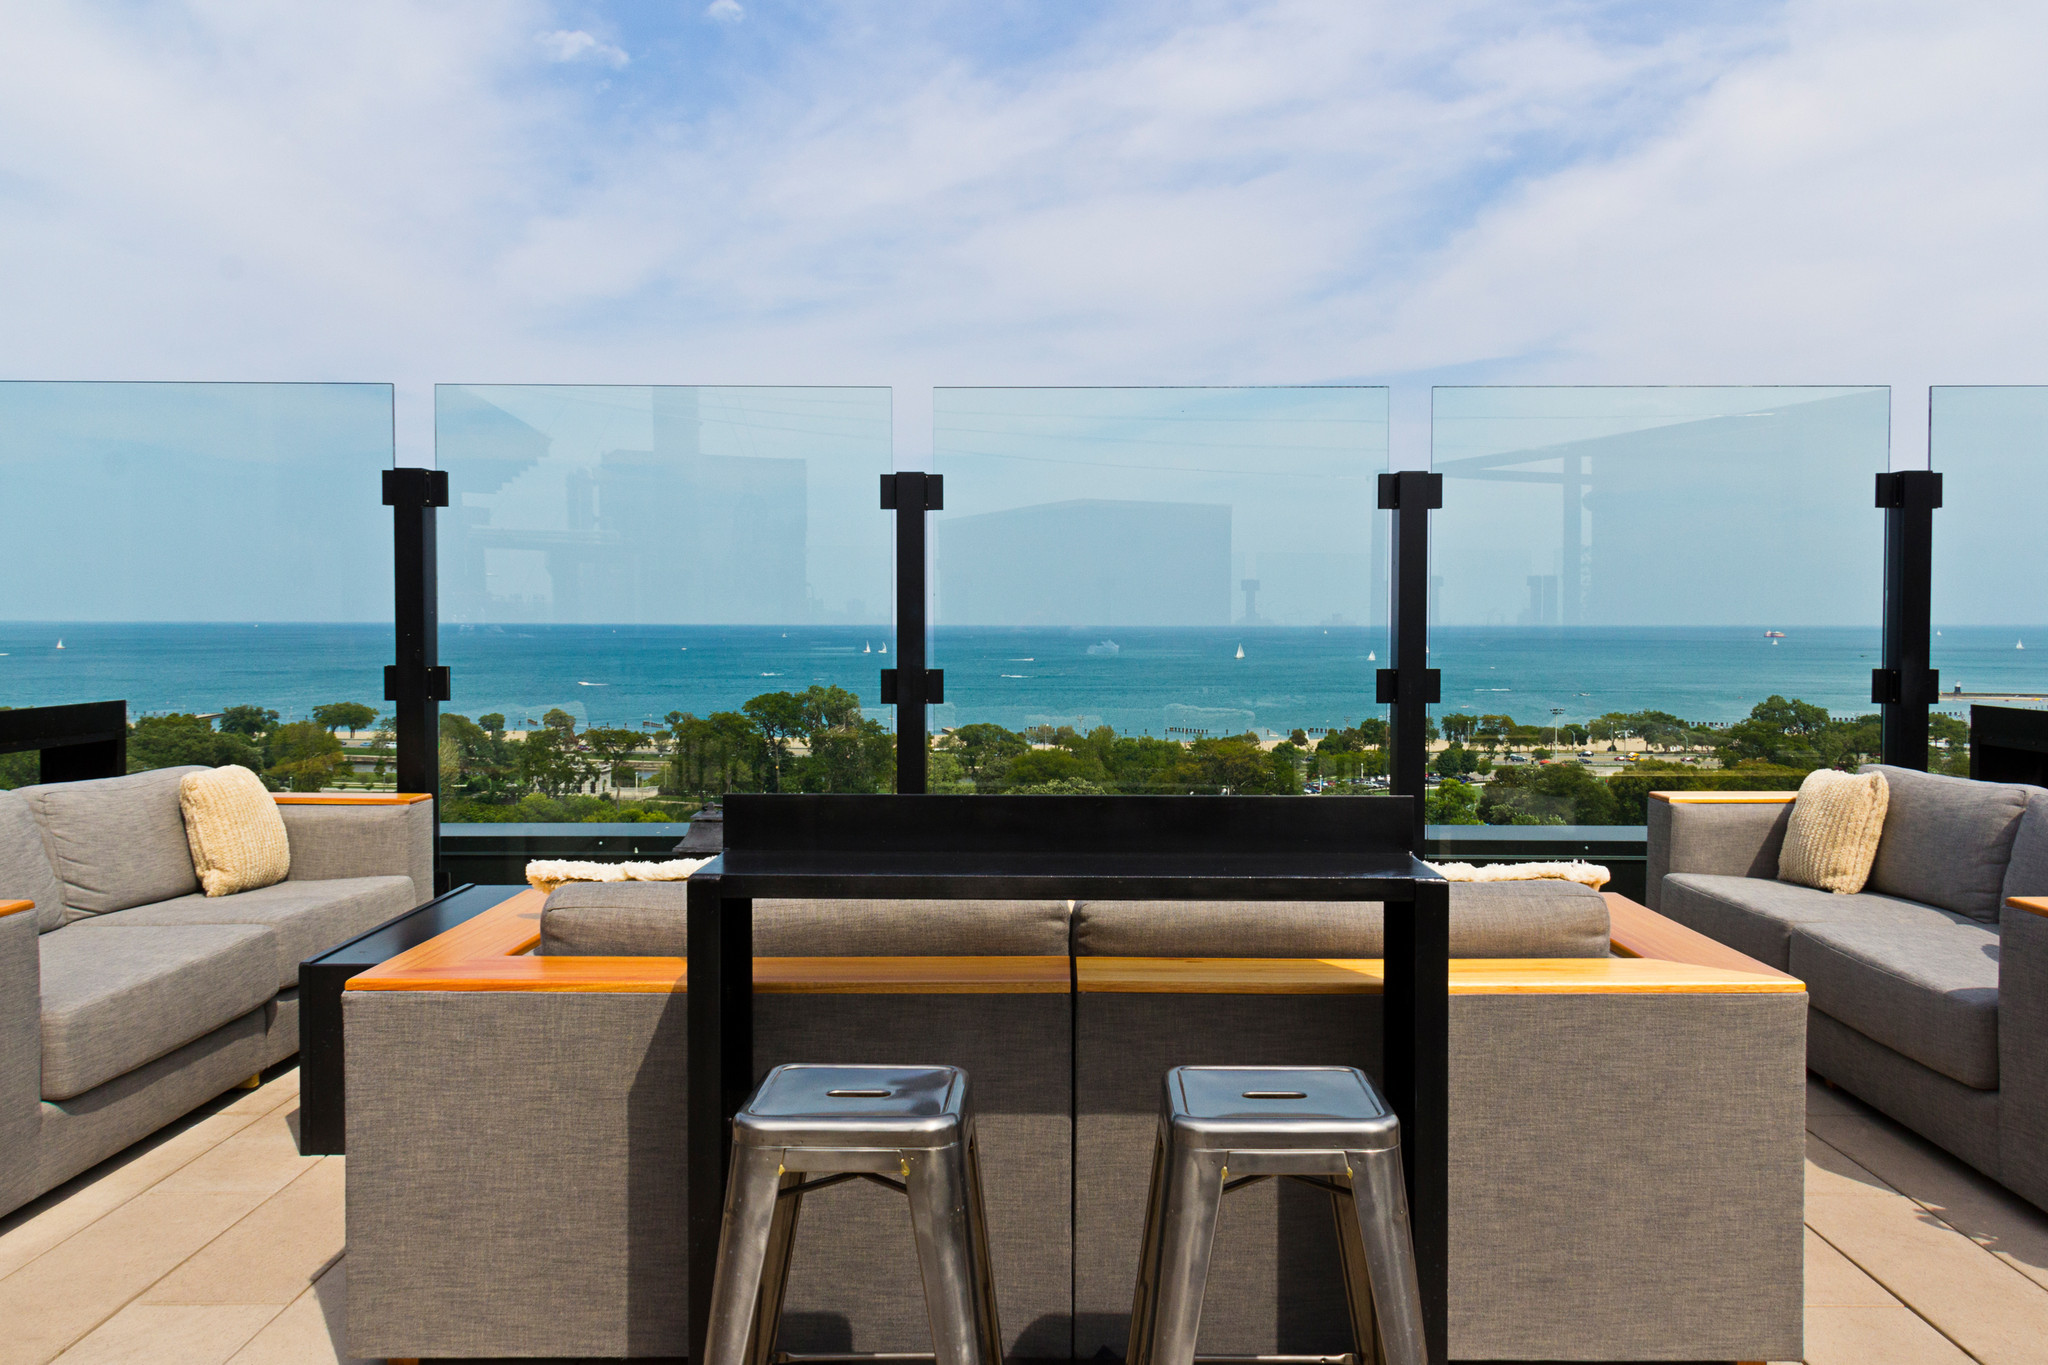 14 Chicago patios and rooftops that are already open - RedEye Chicago